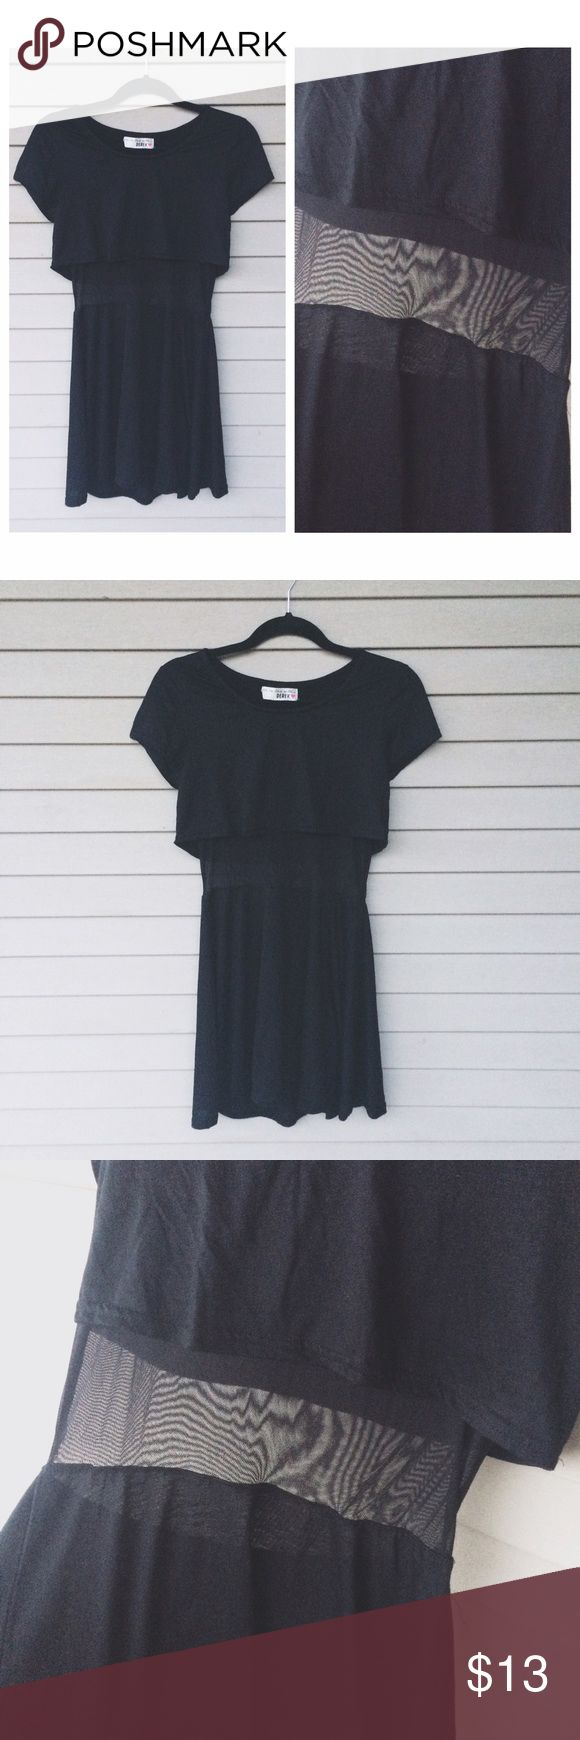 """Short Sleeve Black Mesh Dress, sz M Short-sleeve skater dress by I'm In Love With Derek (?? LOL) in sz M. There's a mesh underlay in the middle to show a peek of skin, which definitely sets this apart from your regular LBD 👌🏻 The overlaying """"crop top"""" part is about 12"""" in length, so would recommend for an A or B cup to avoid potential underboob! Pic 3 is from SheIn and shows similar style.  --- Measurements: bust stretches to fit approx 26""""-35"""" around; top half (""""crop top"""" area"""") is 12"""" in…"""